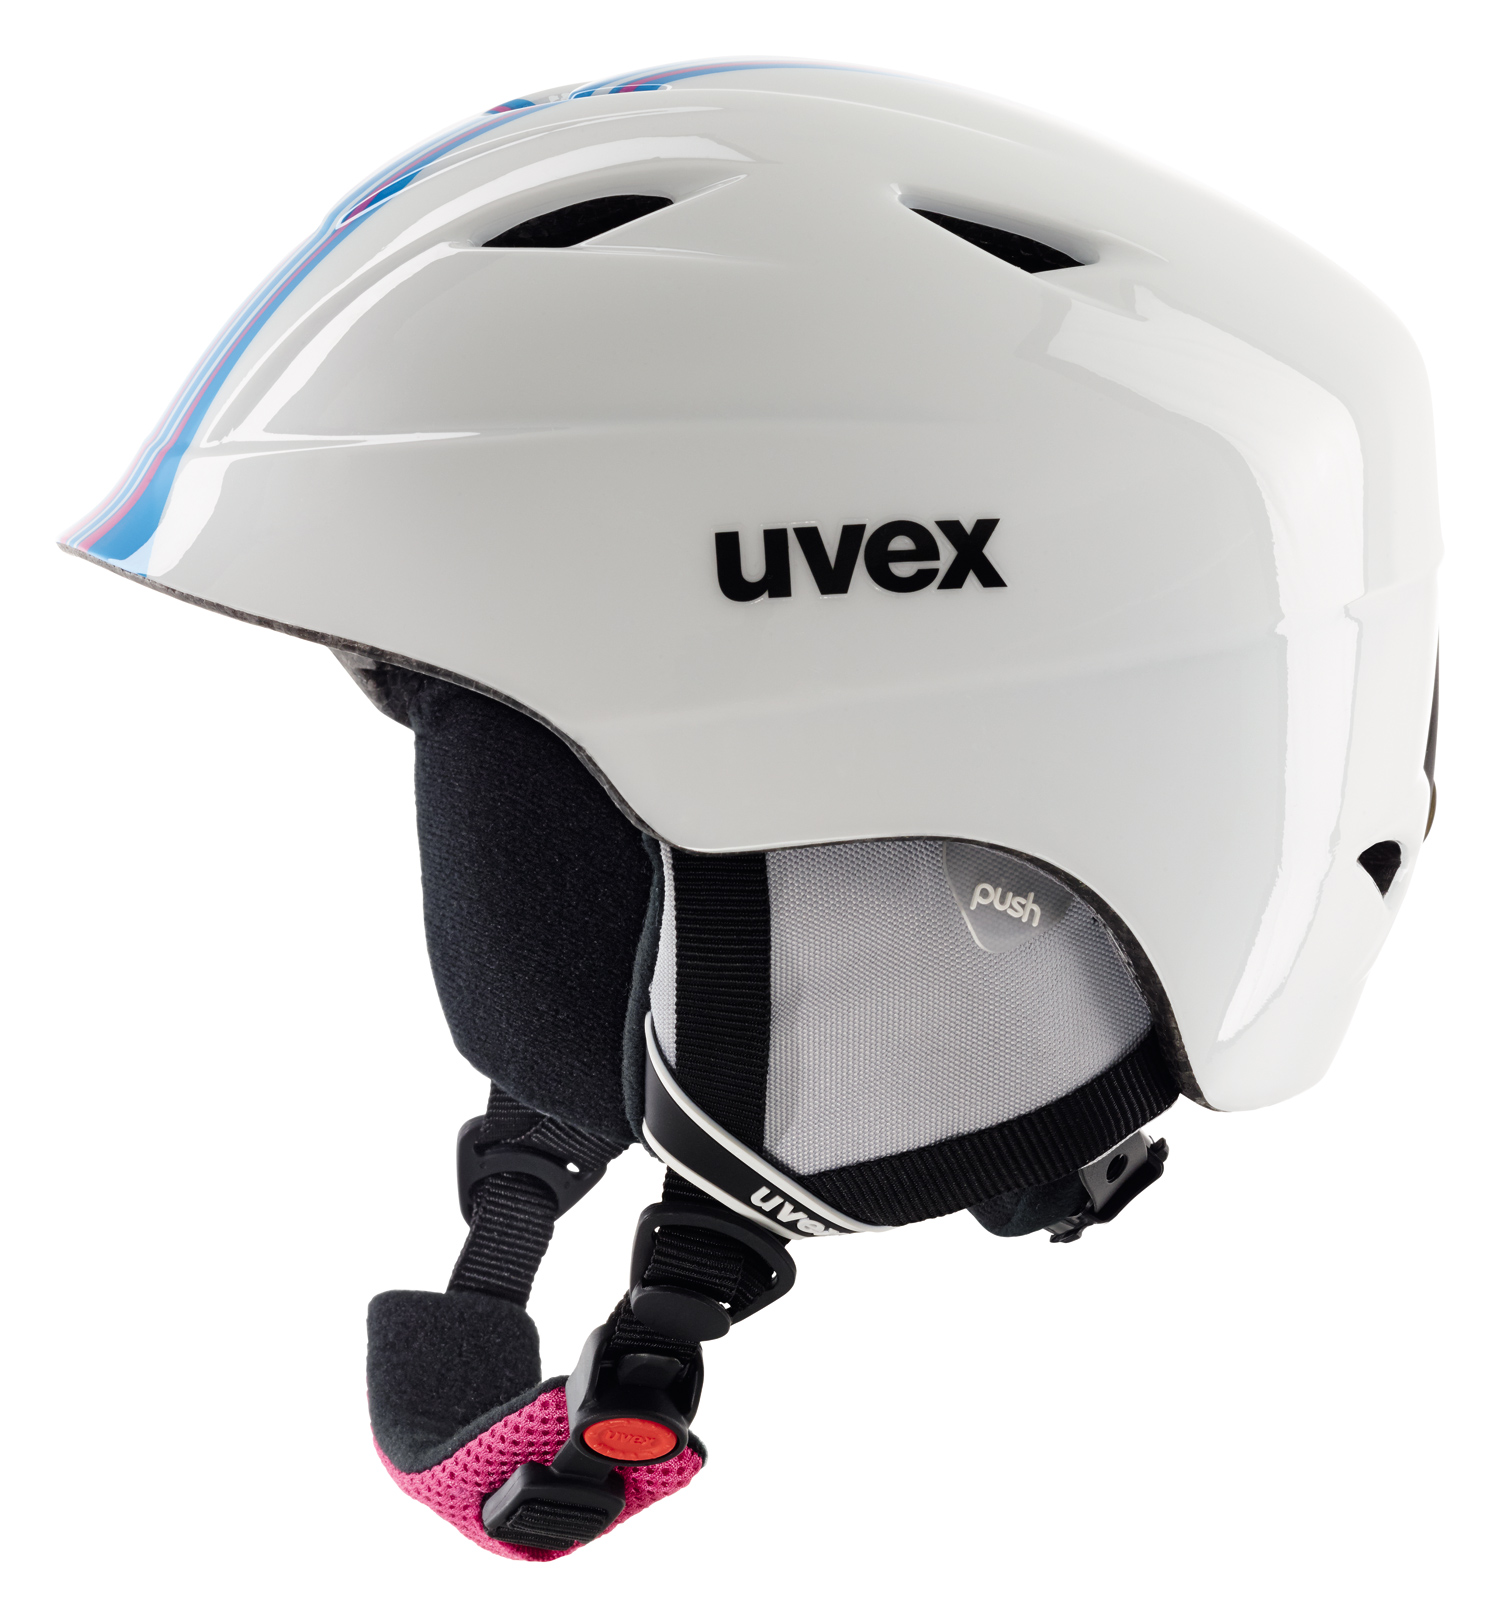 UVEX AIRWING 2 RACE, white-pink S566192190 54-58 cm